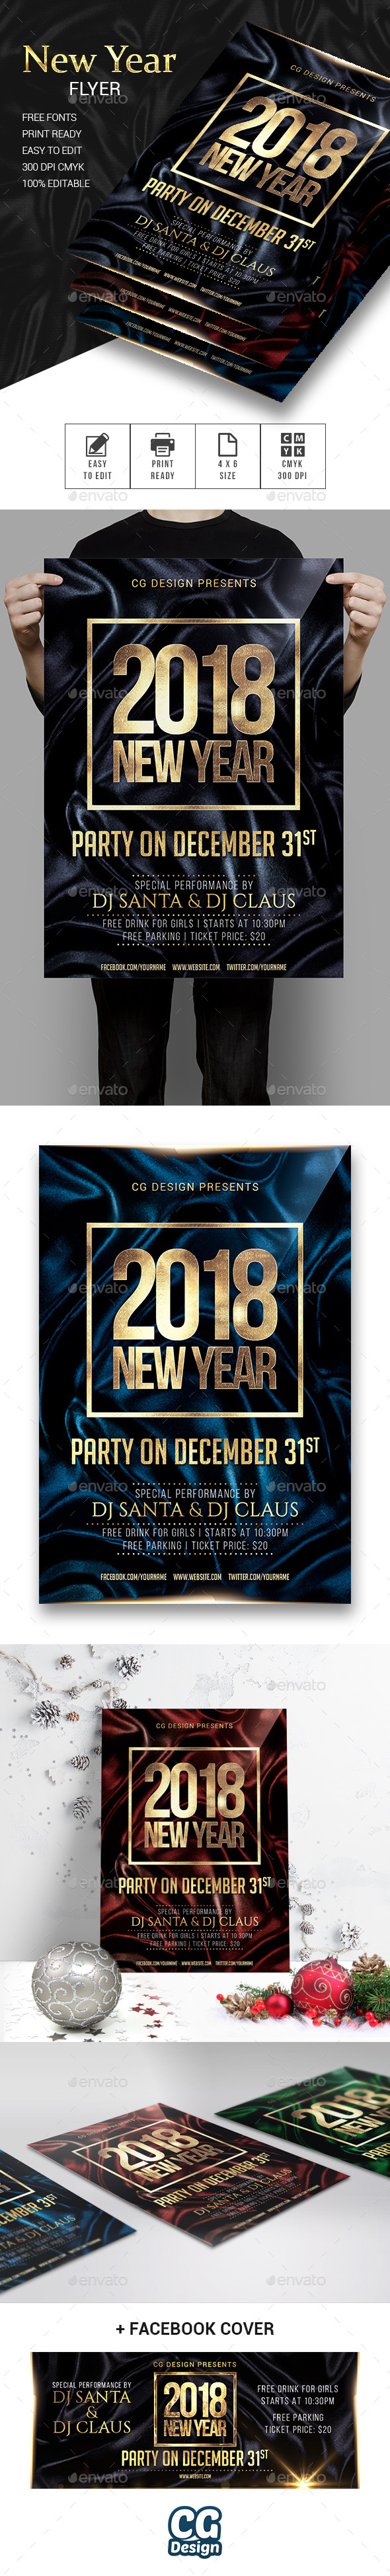 GraphicRiver New Year Flyer 21050345